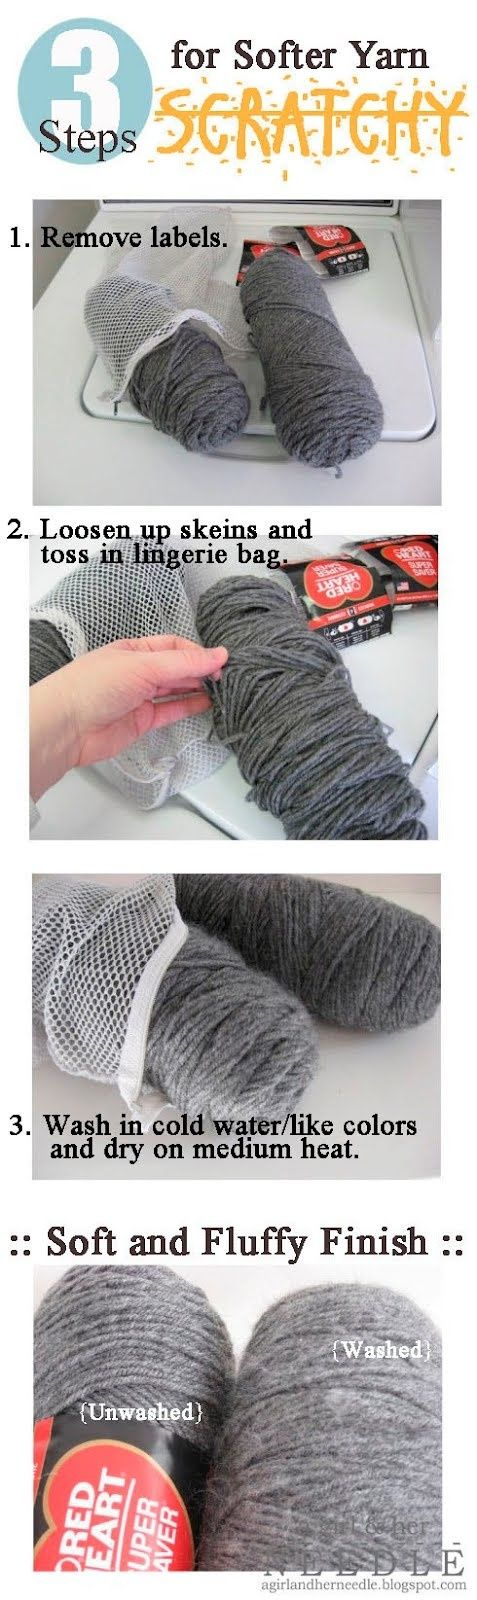 How to soften yarn! Wish I had seen this BEFORE I completed my poncho...